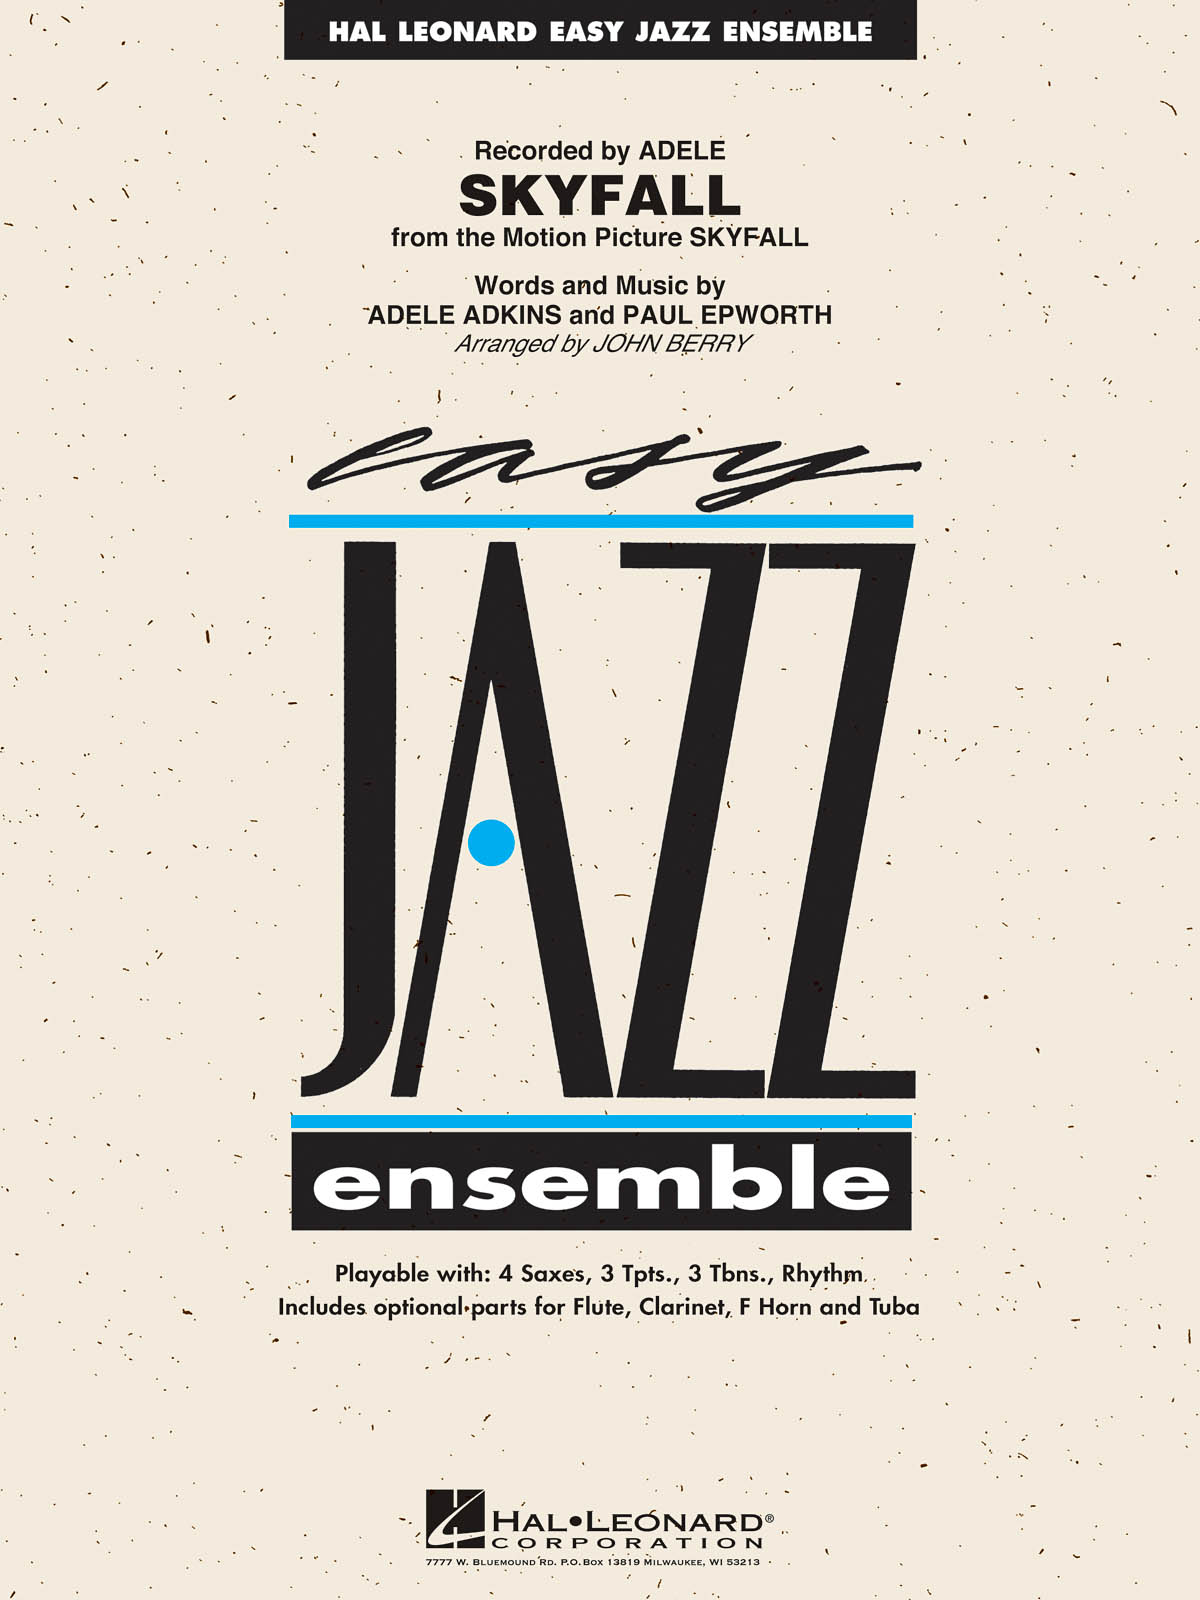 Skyfall: Easy Jazz Ensemble